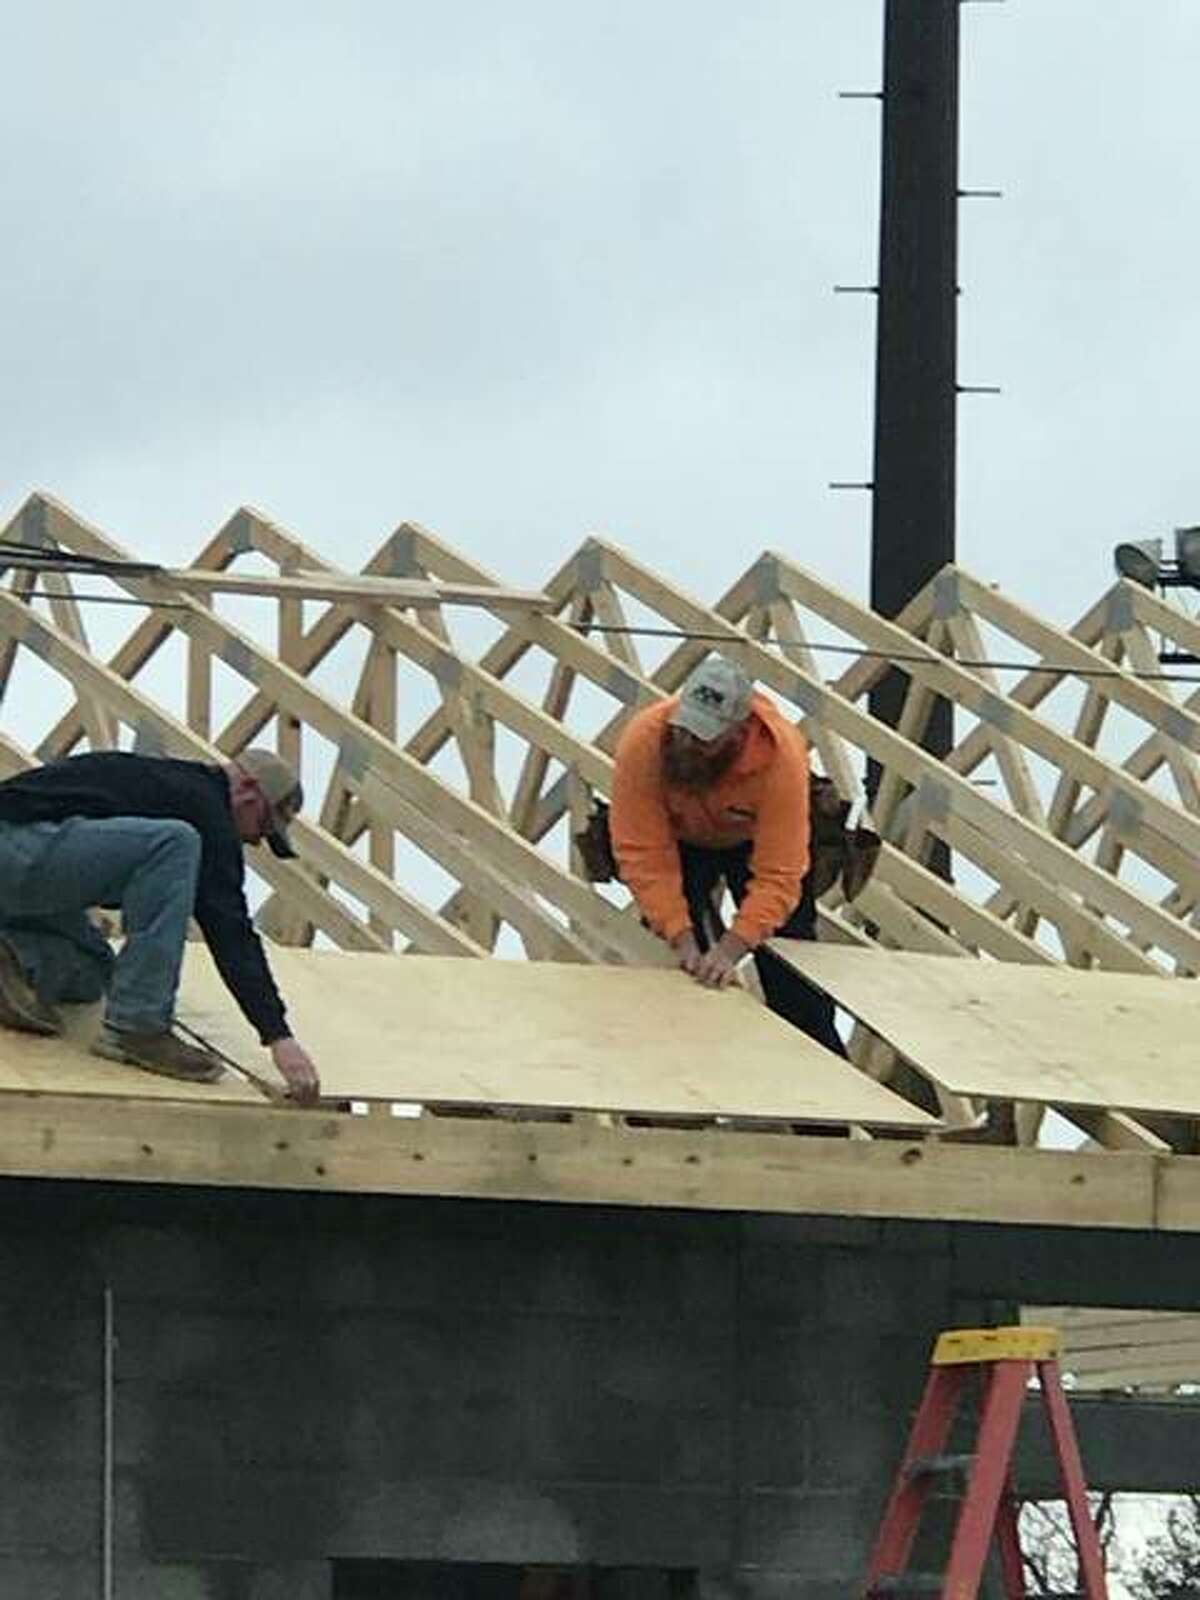 Volunteers from Jun Construction of Godfrey put up roof trusses and sheeting on the evolving concession and restroom building at Gordon F. Moore Park on Wednesday, Jan. 10. The $300,000 structure is one of 12 of the most significant projects for which the city issued a building permit in 2017.